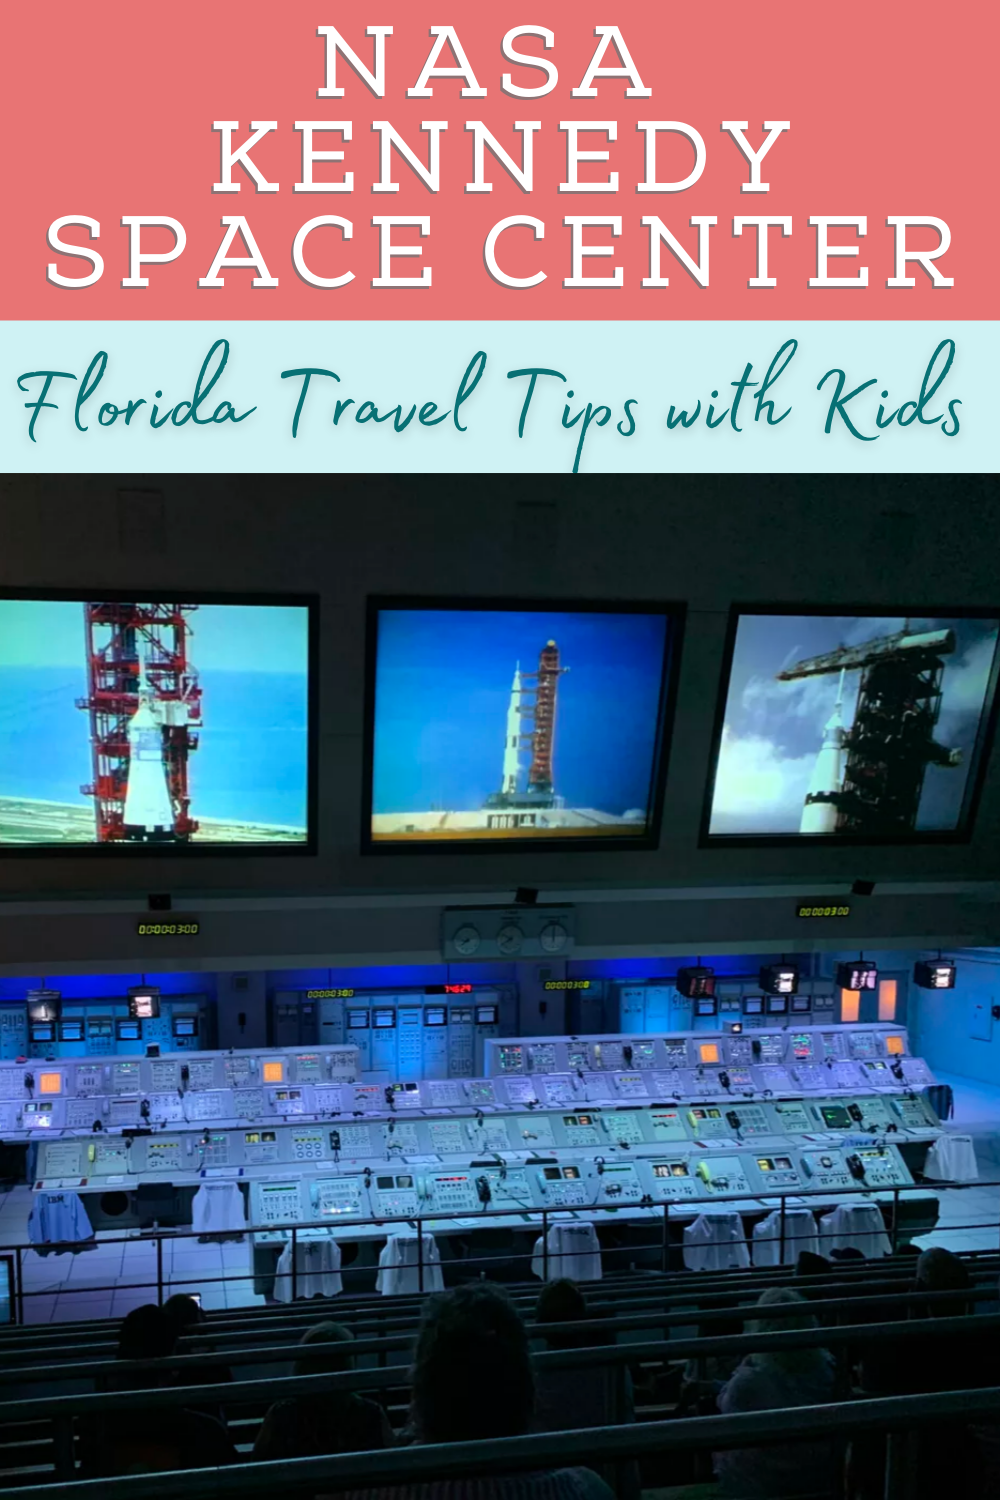 pin with text kennedy space center florida travel tips with kids image is of command center